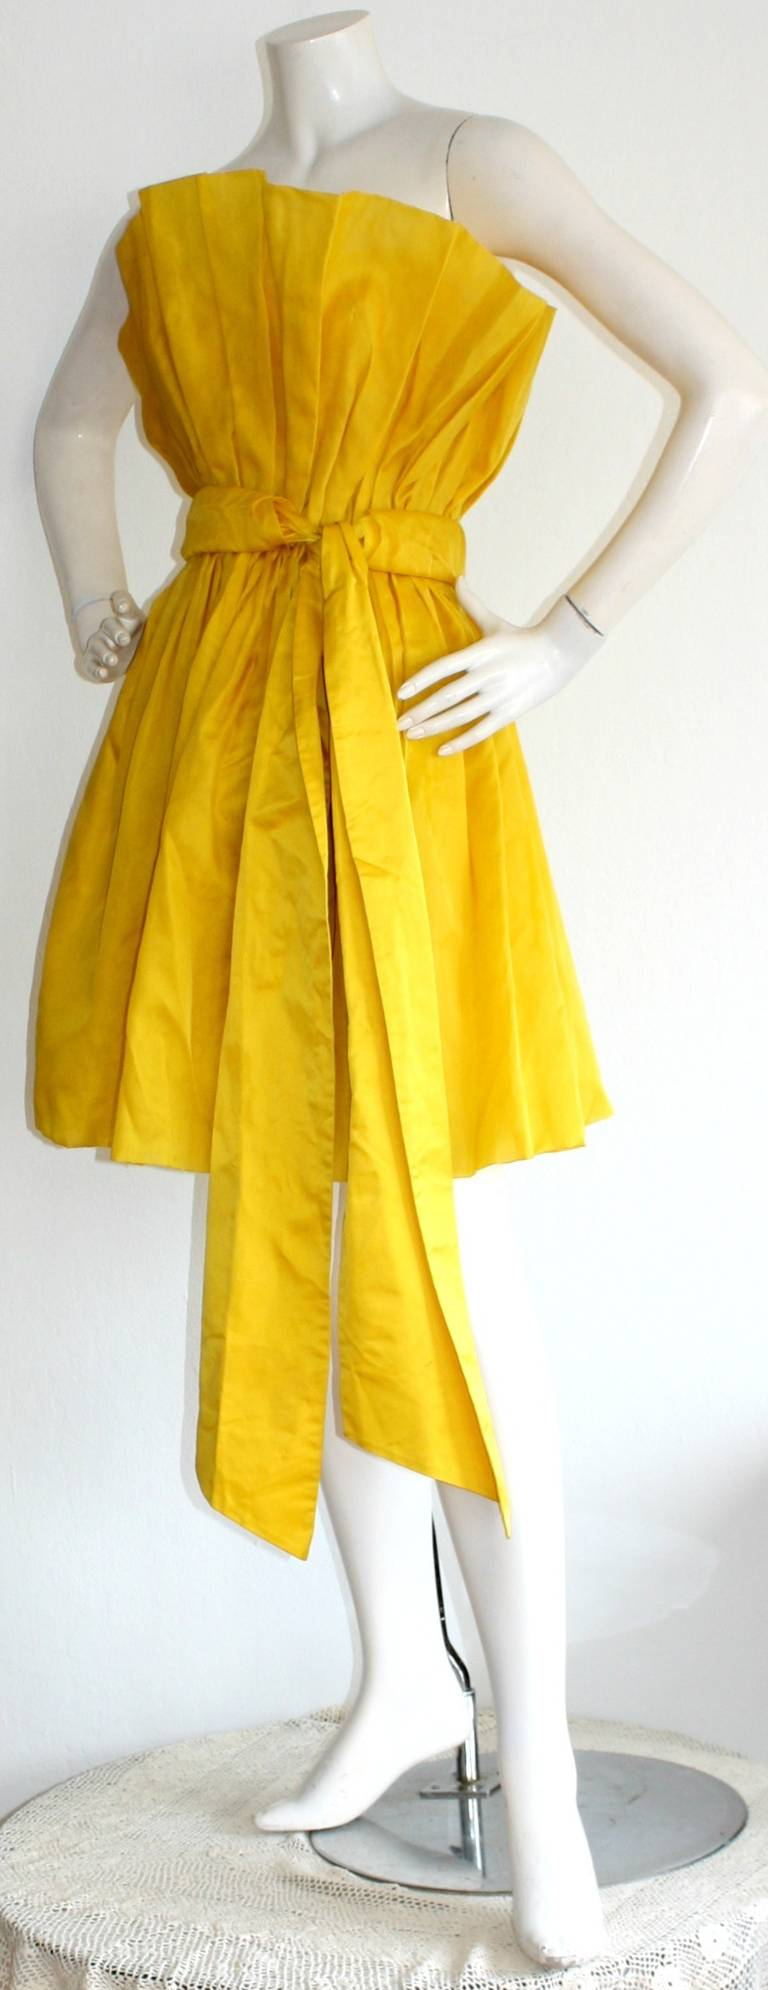 James Purcell Stunning Vintage Origami Fan Dress 3